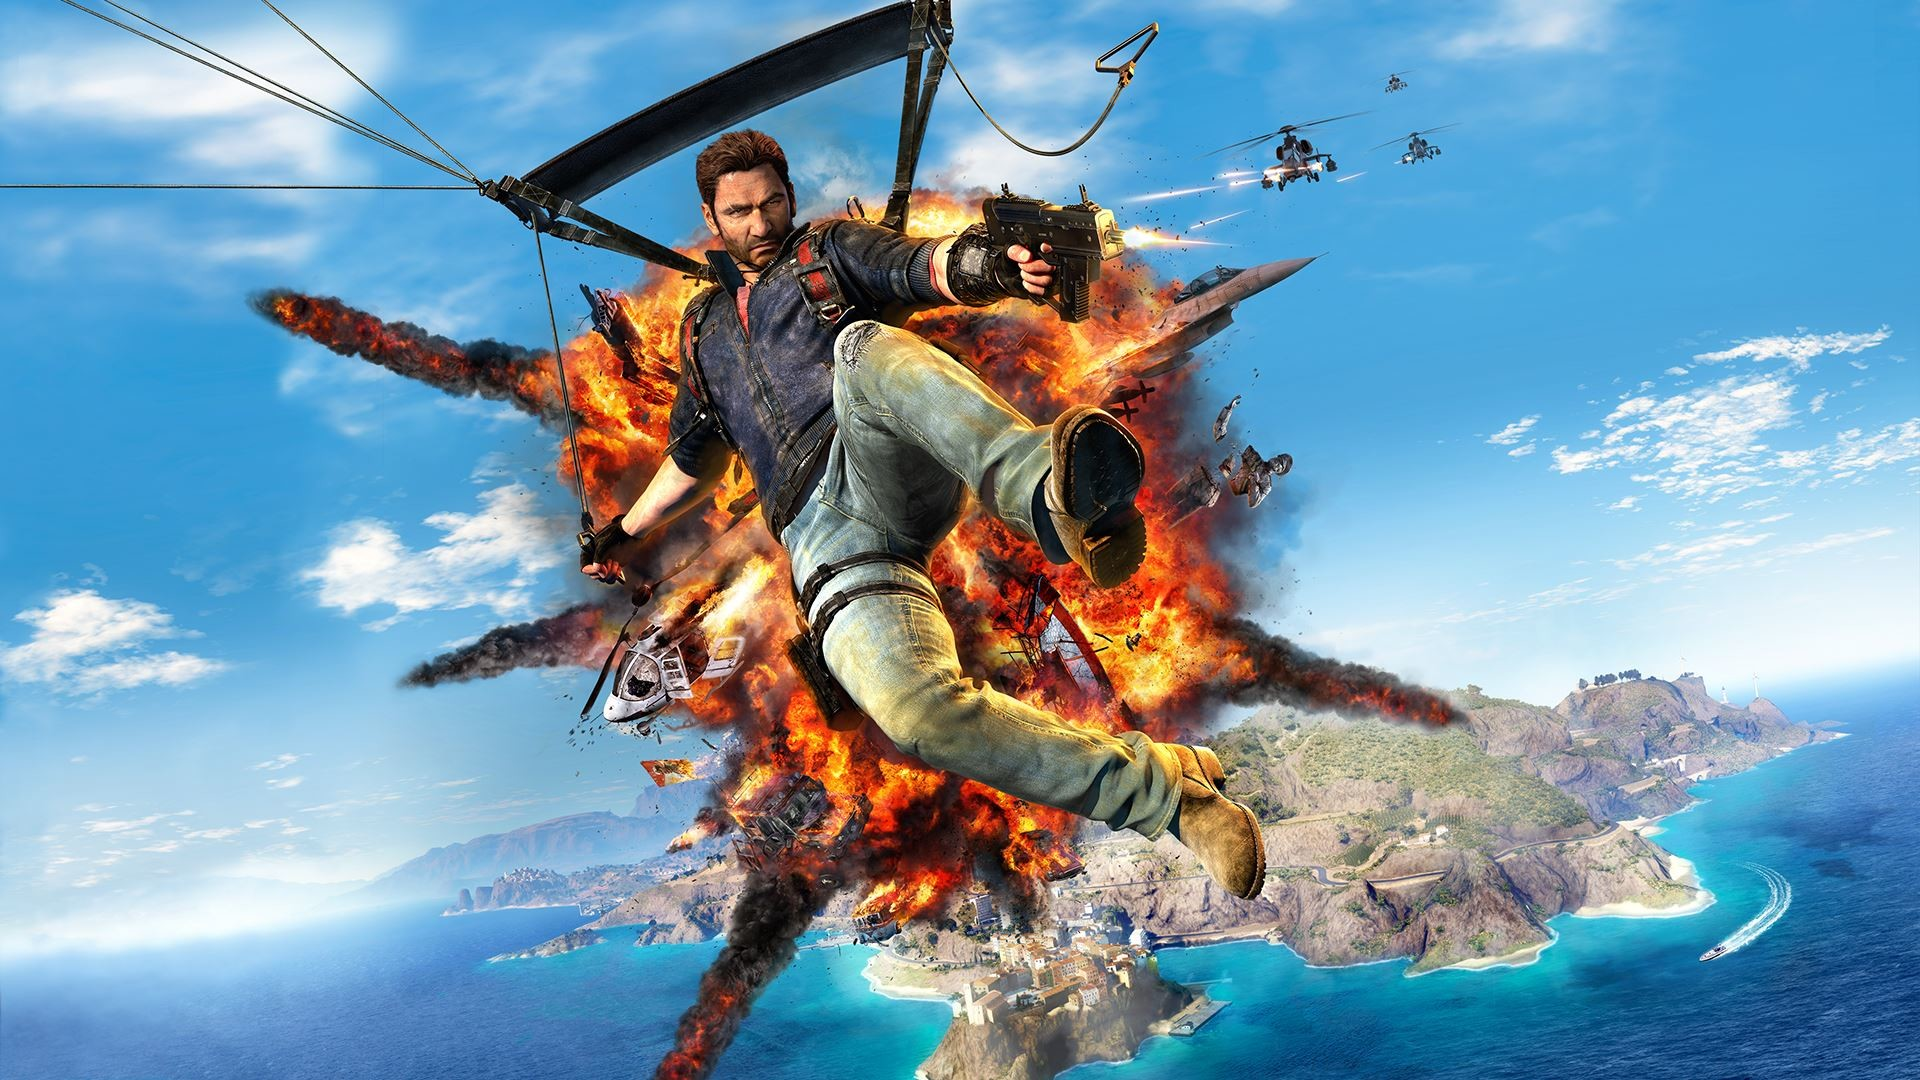 Just Cause developer Avalanche Studios now belongs to Nordisk Film